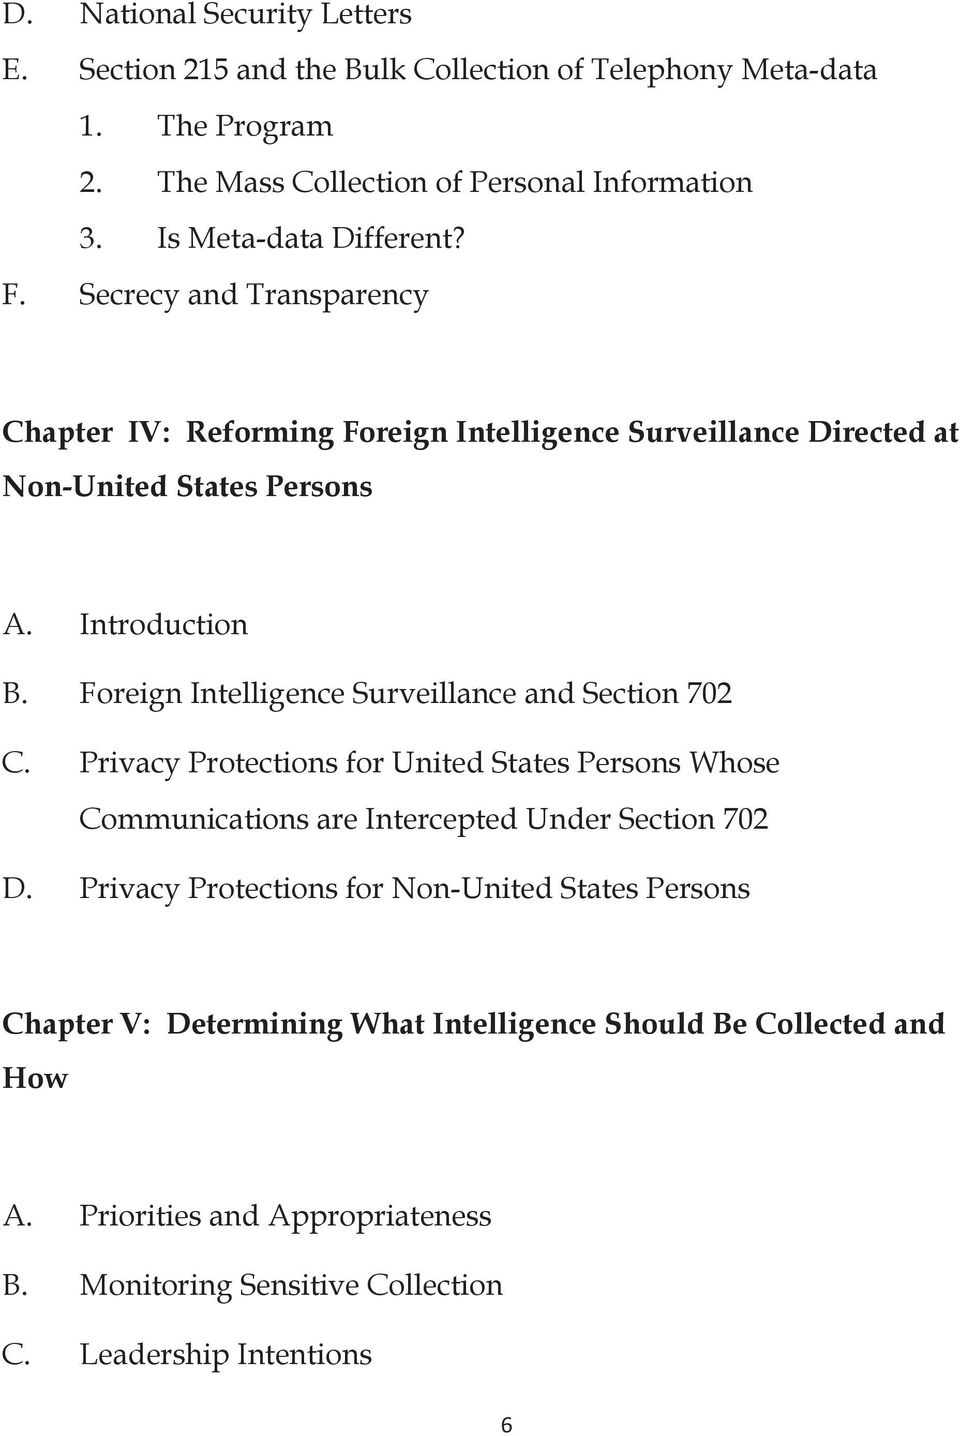 Foreign Intelligence Surveillance and Section 702 C. Privacy Protections for United States Persons Whose Communications are Intercepted Under Section 702 D.